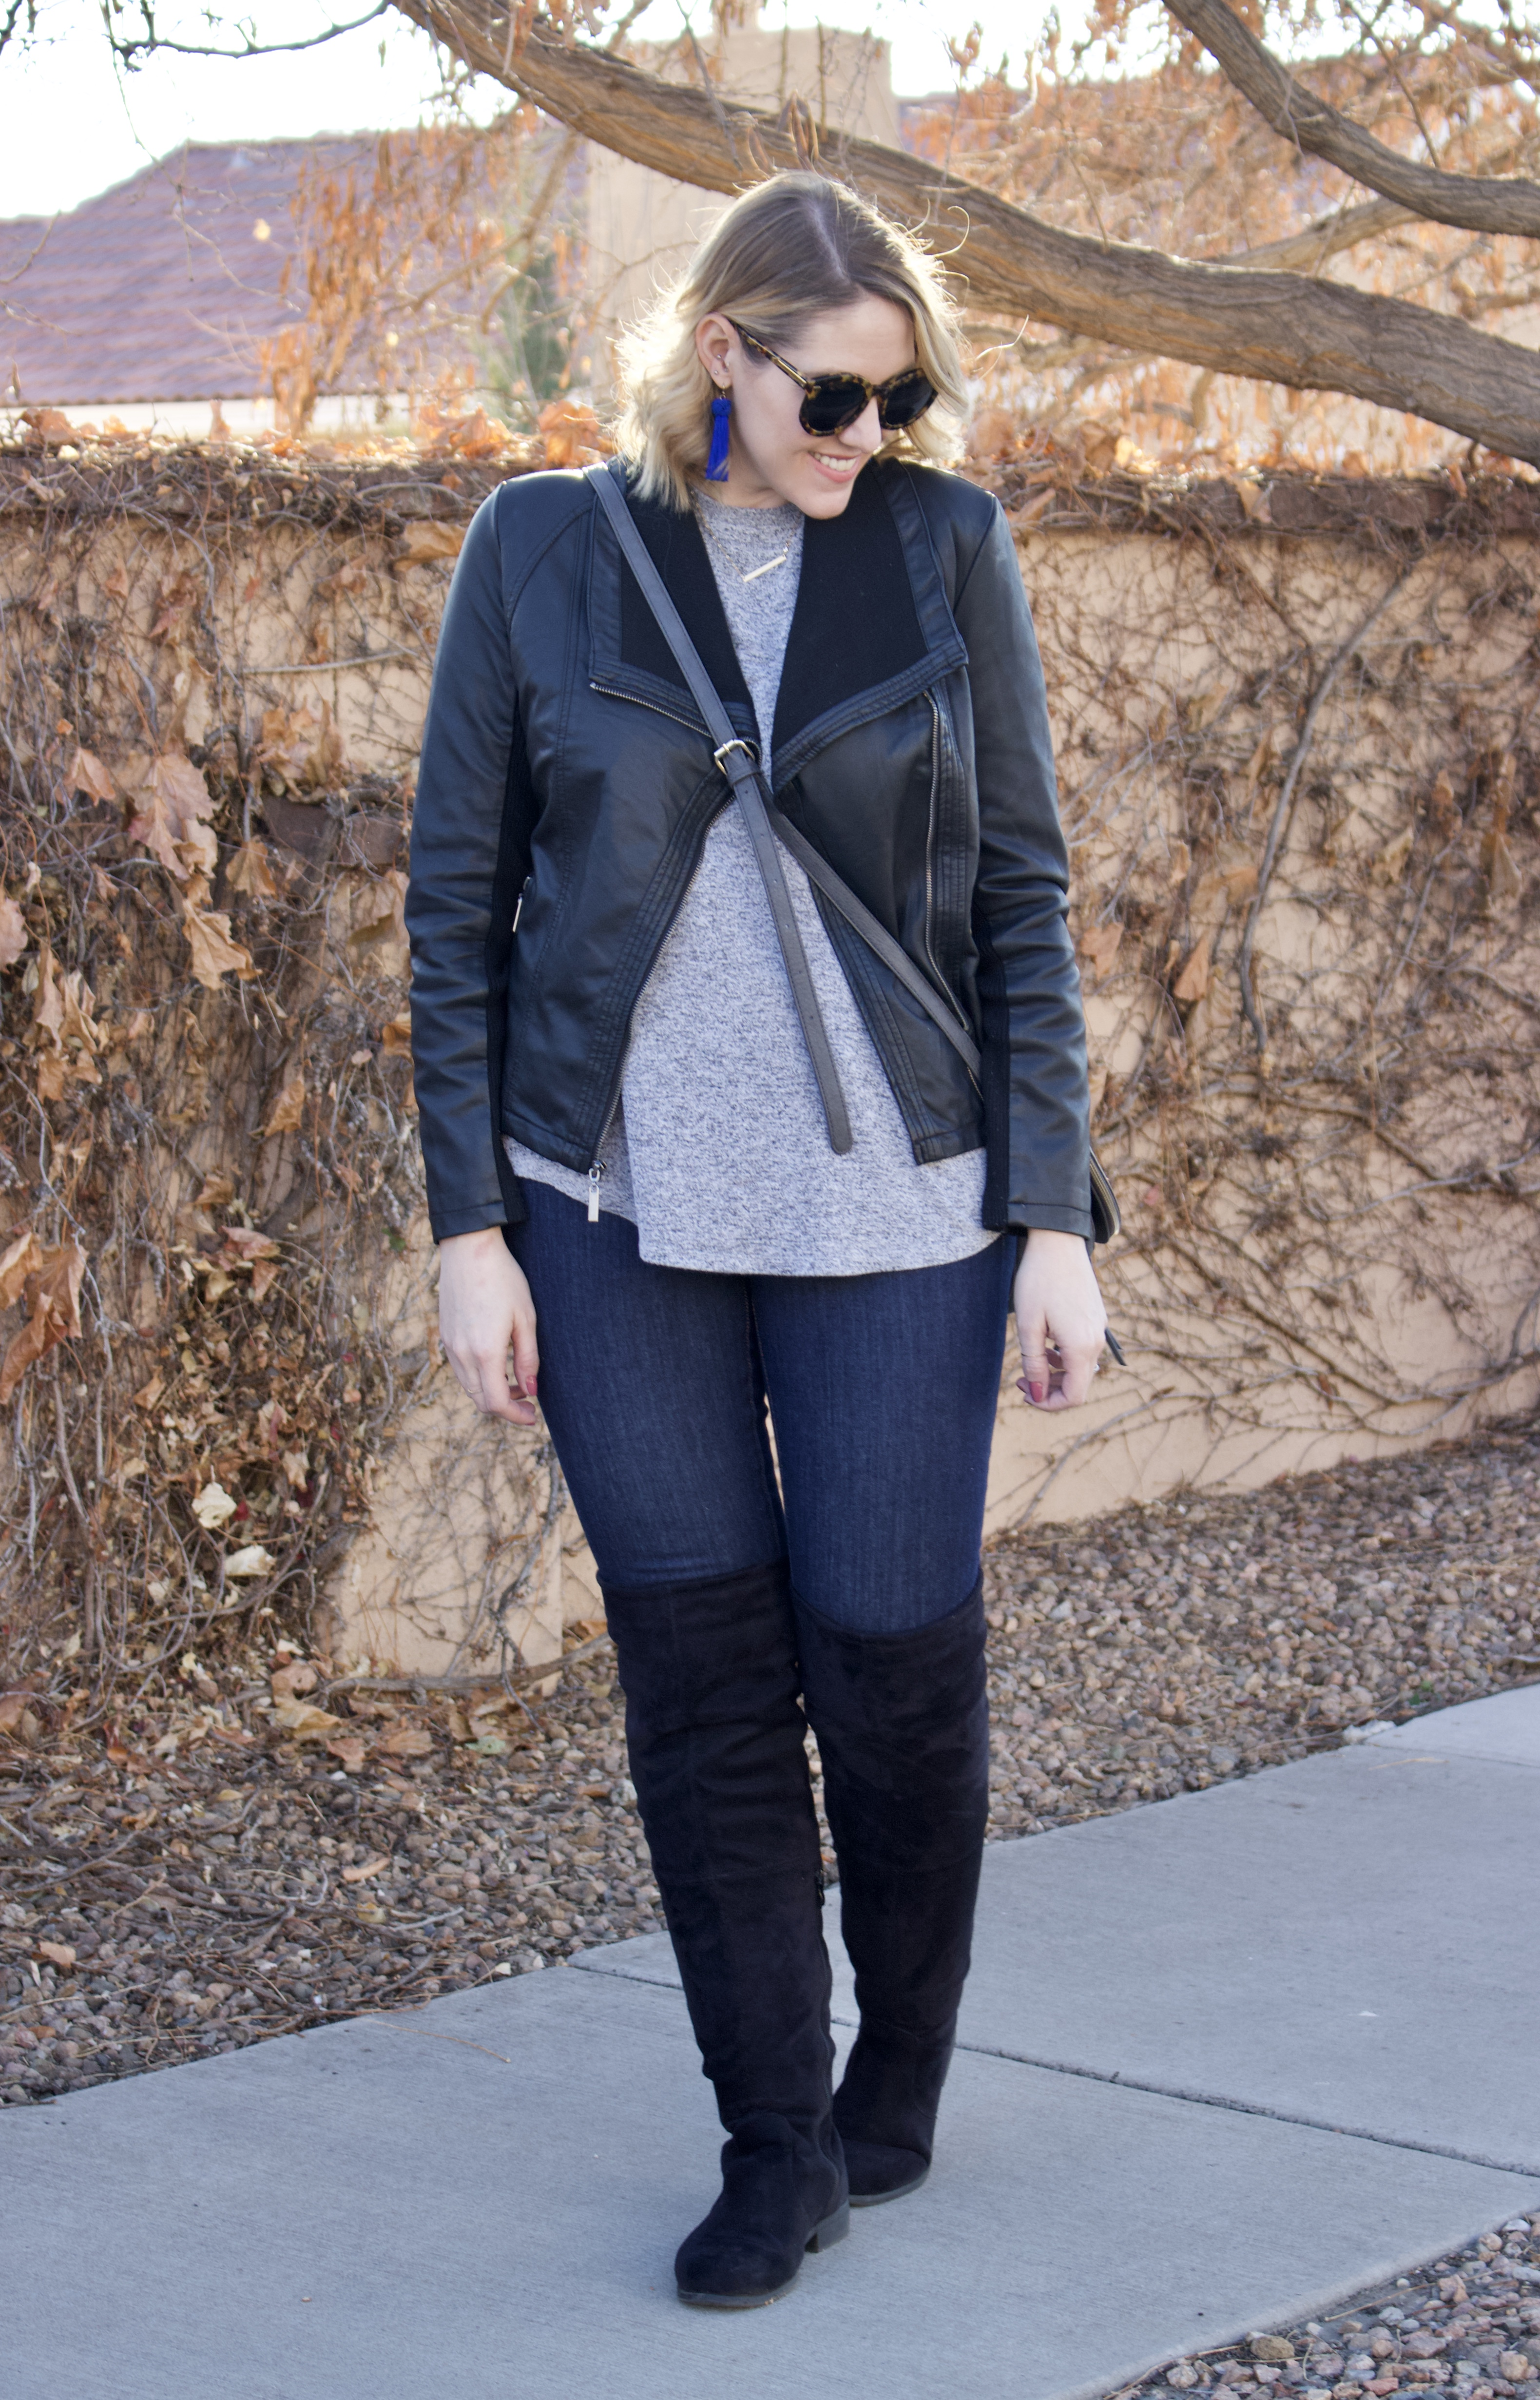 cute winter outfit for tall girls #leatherjacket #overthekneeboots